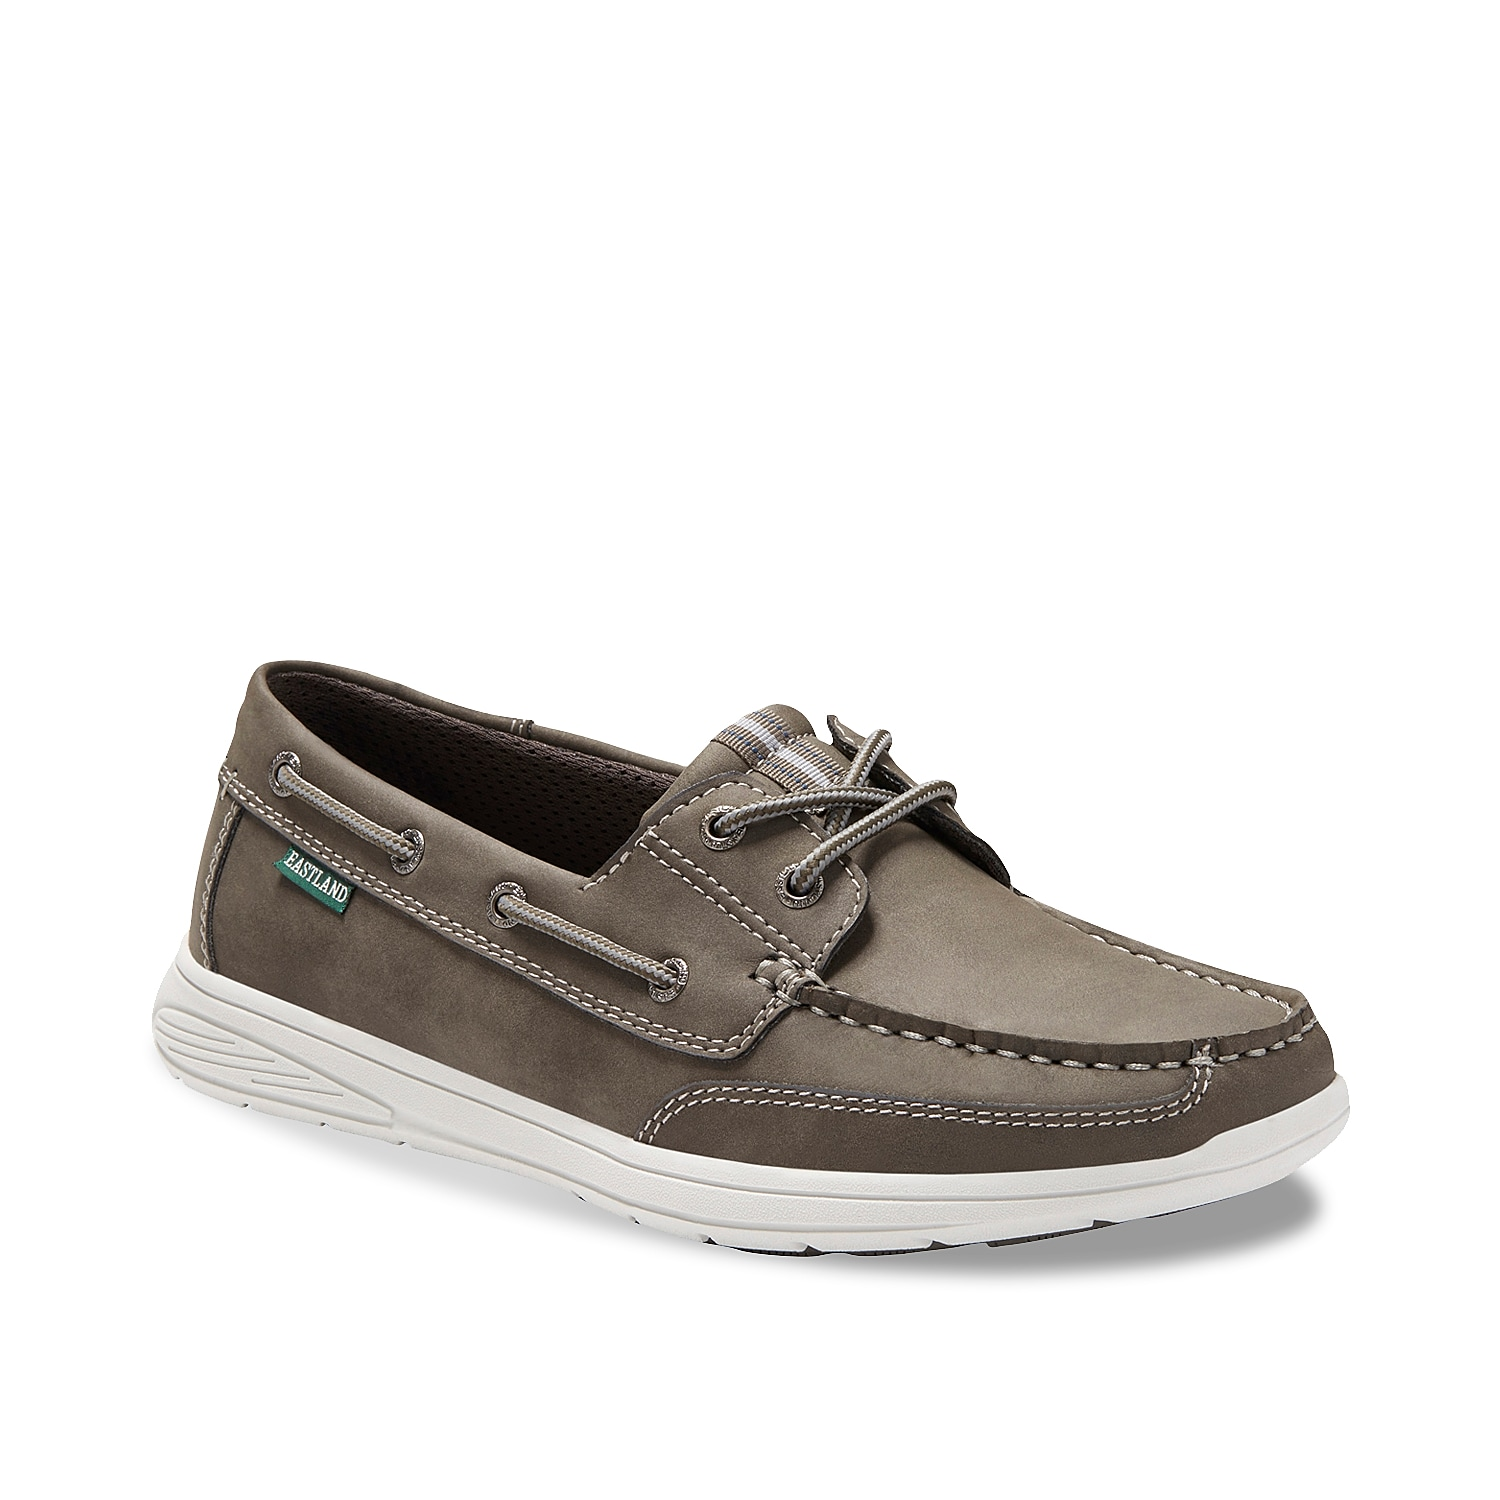 Let the Benton boat shoe from Eastland take you through the warm weather season in style! An Active Memory Foam footbed will keep you comfortable all day long.